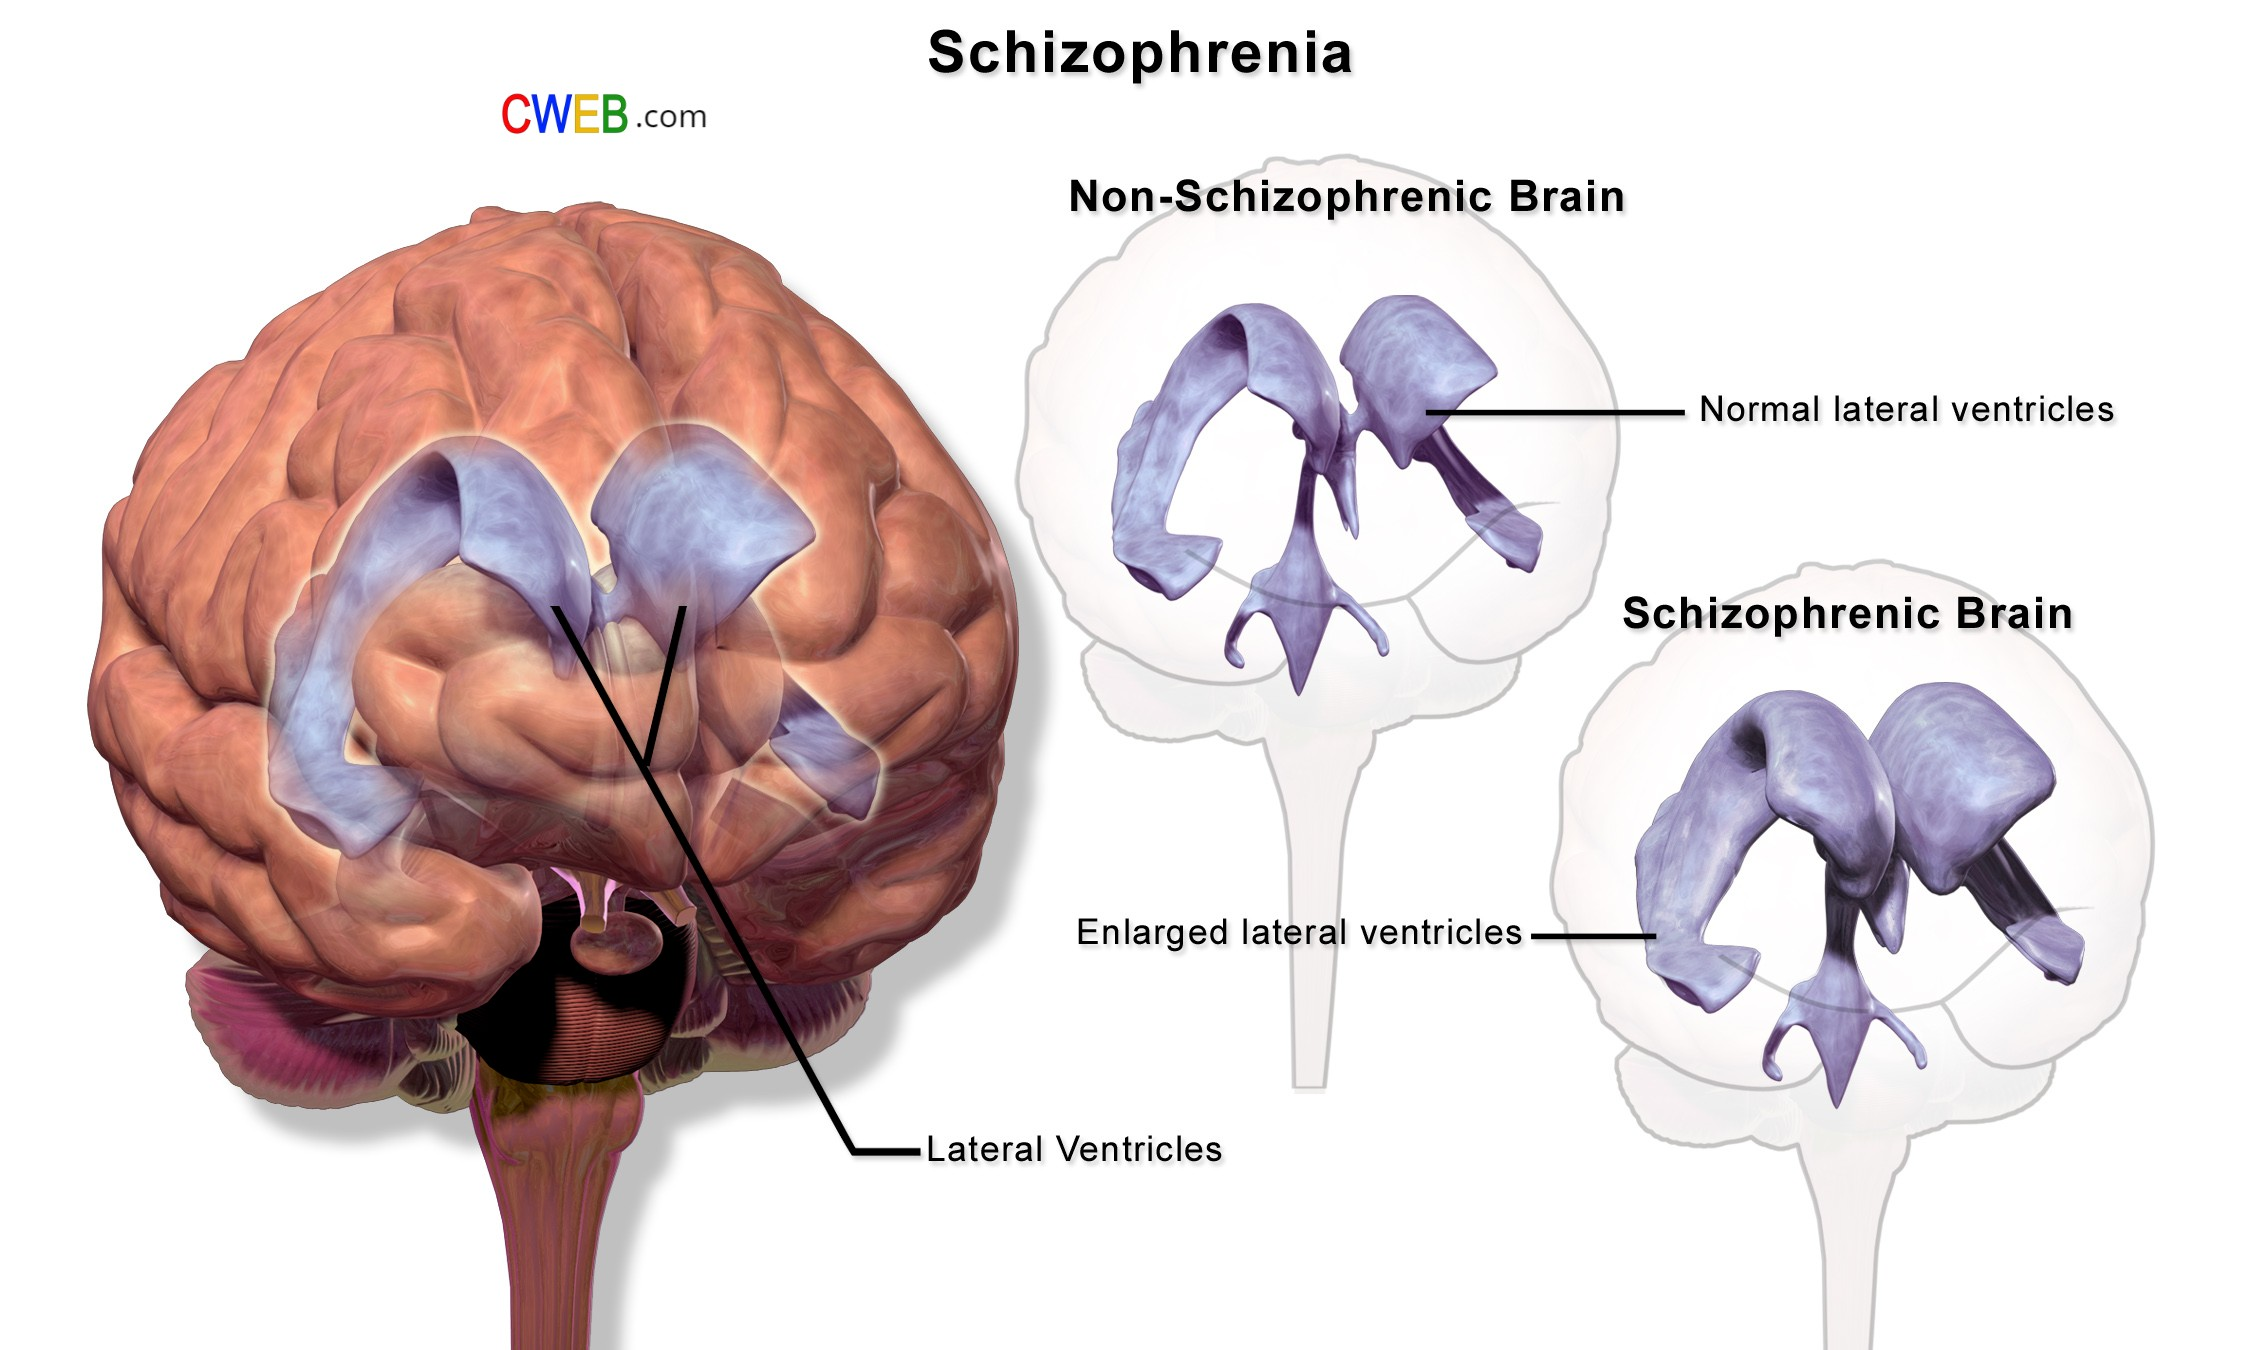 Schizophrenia_(Illustration)